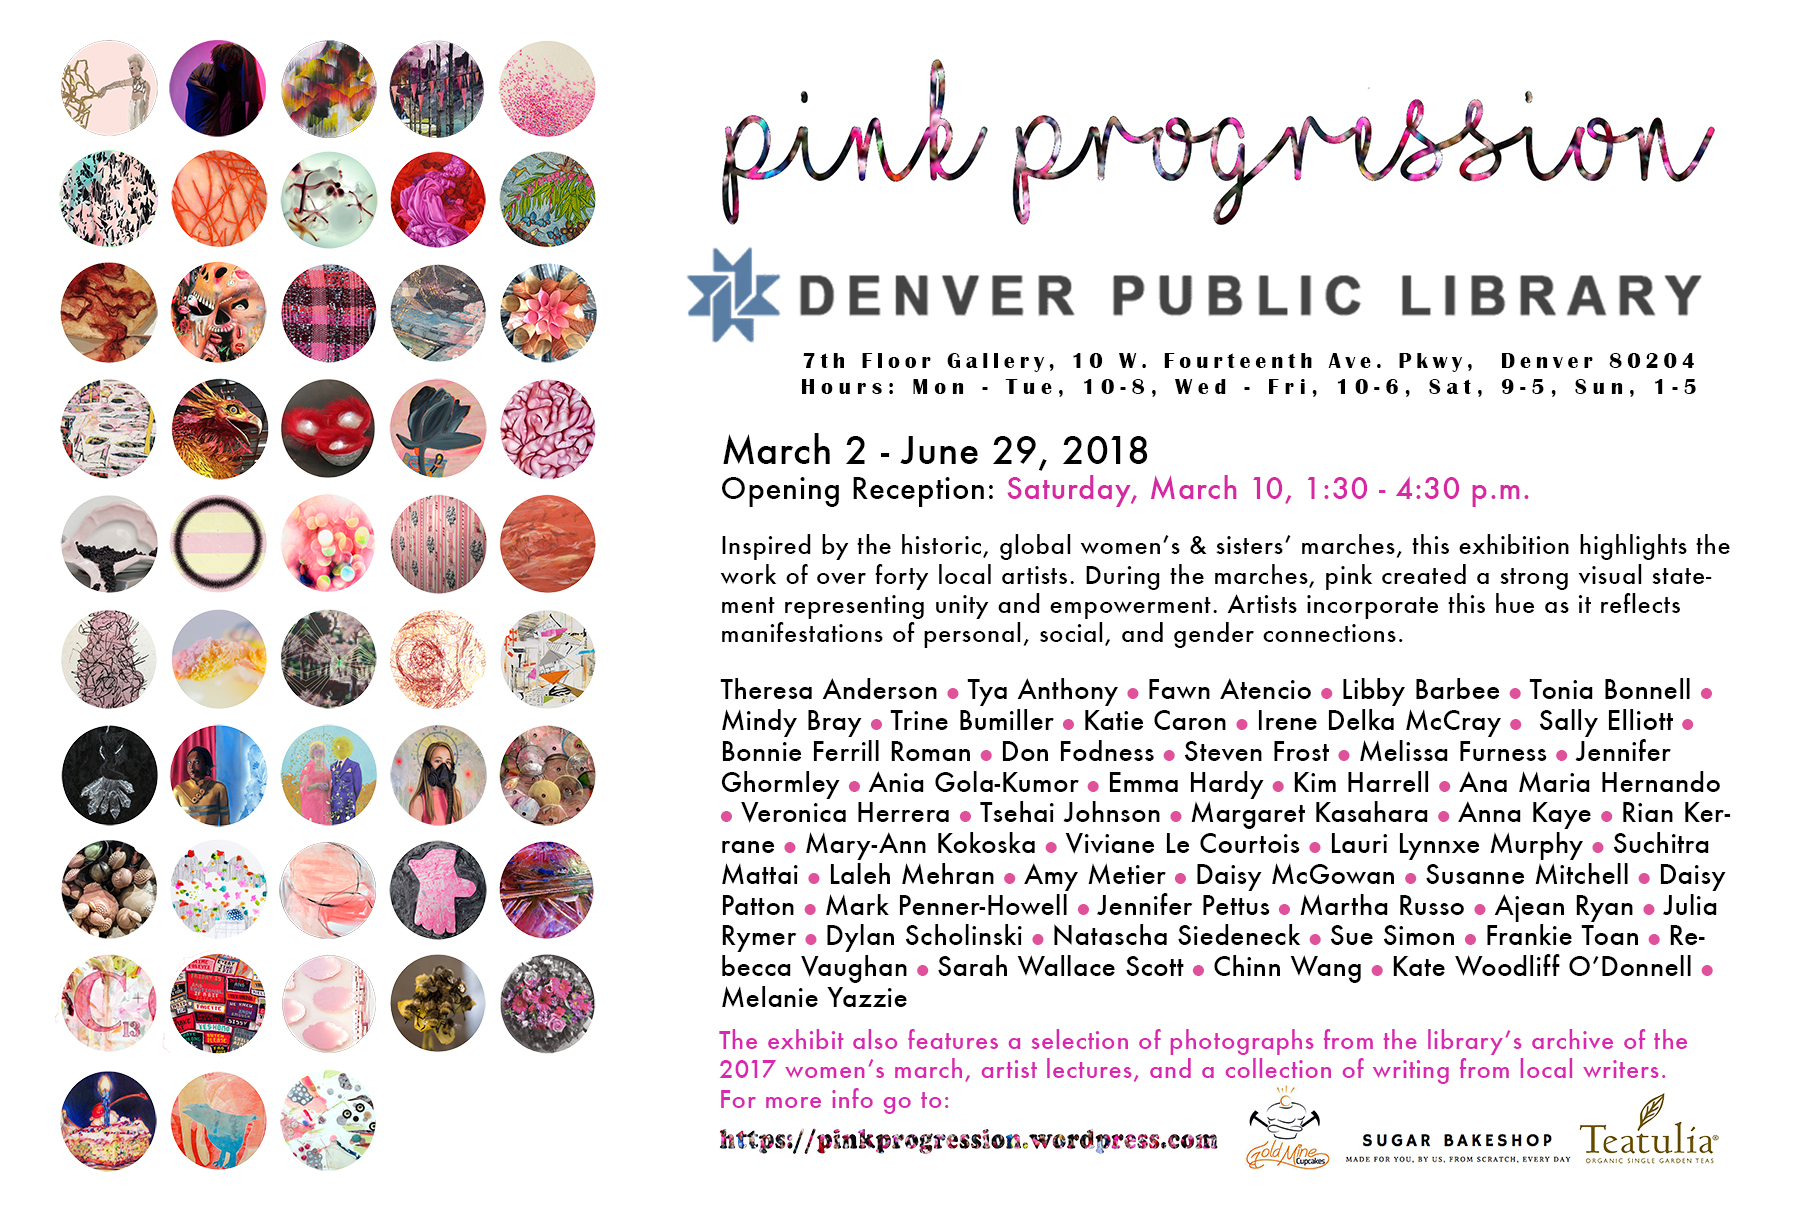 Pink Progression at the Denver Public Library's Vida Ellison Gallery - Please join us on March 10th from 1:30 - 4:30 p.m. for our opening reception. Over forty local artists incorporate pink as a unifying, empowering element as inspired by the historic women and sister marches.Pink Progression at the Denver Public Library also features a poetry book of local writers and comic artists, collaborative artwork, and artist lectures. For more information go to: http://www/pinkprogression.wordpress.com